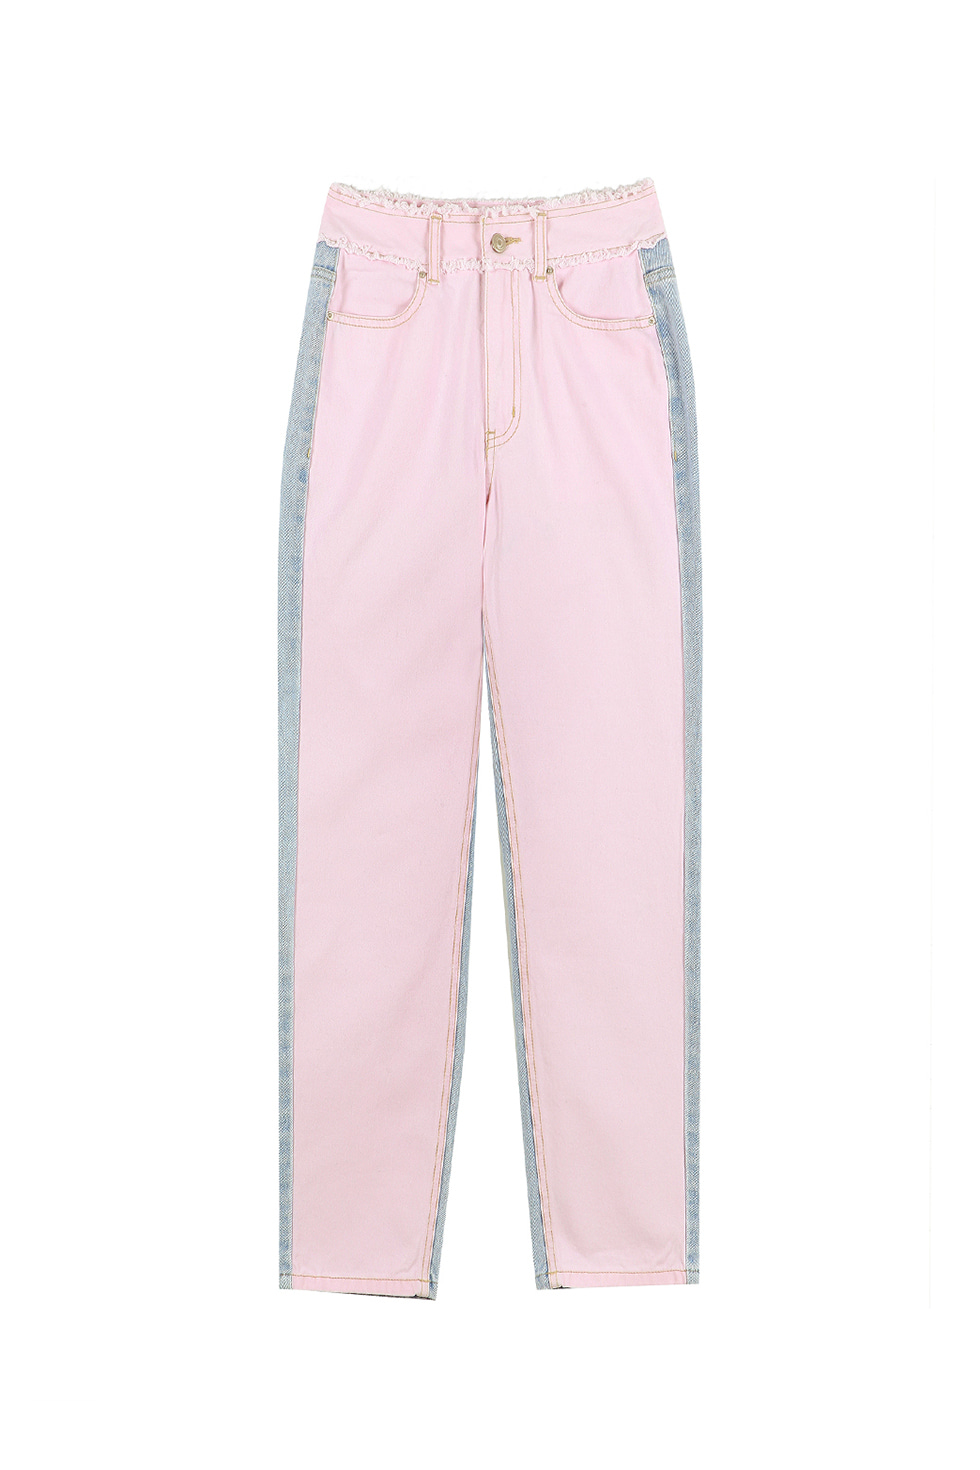 HIGH WAIST TWO-TONE PANTS - PINK